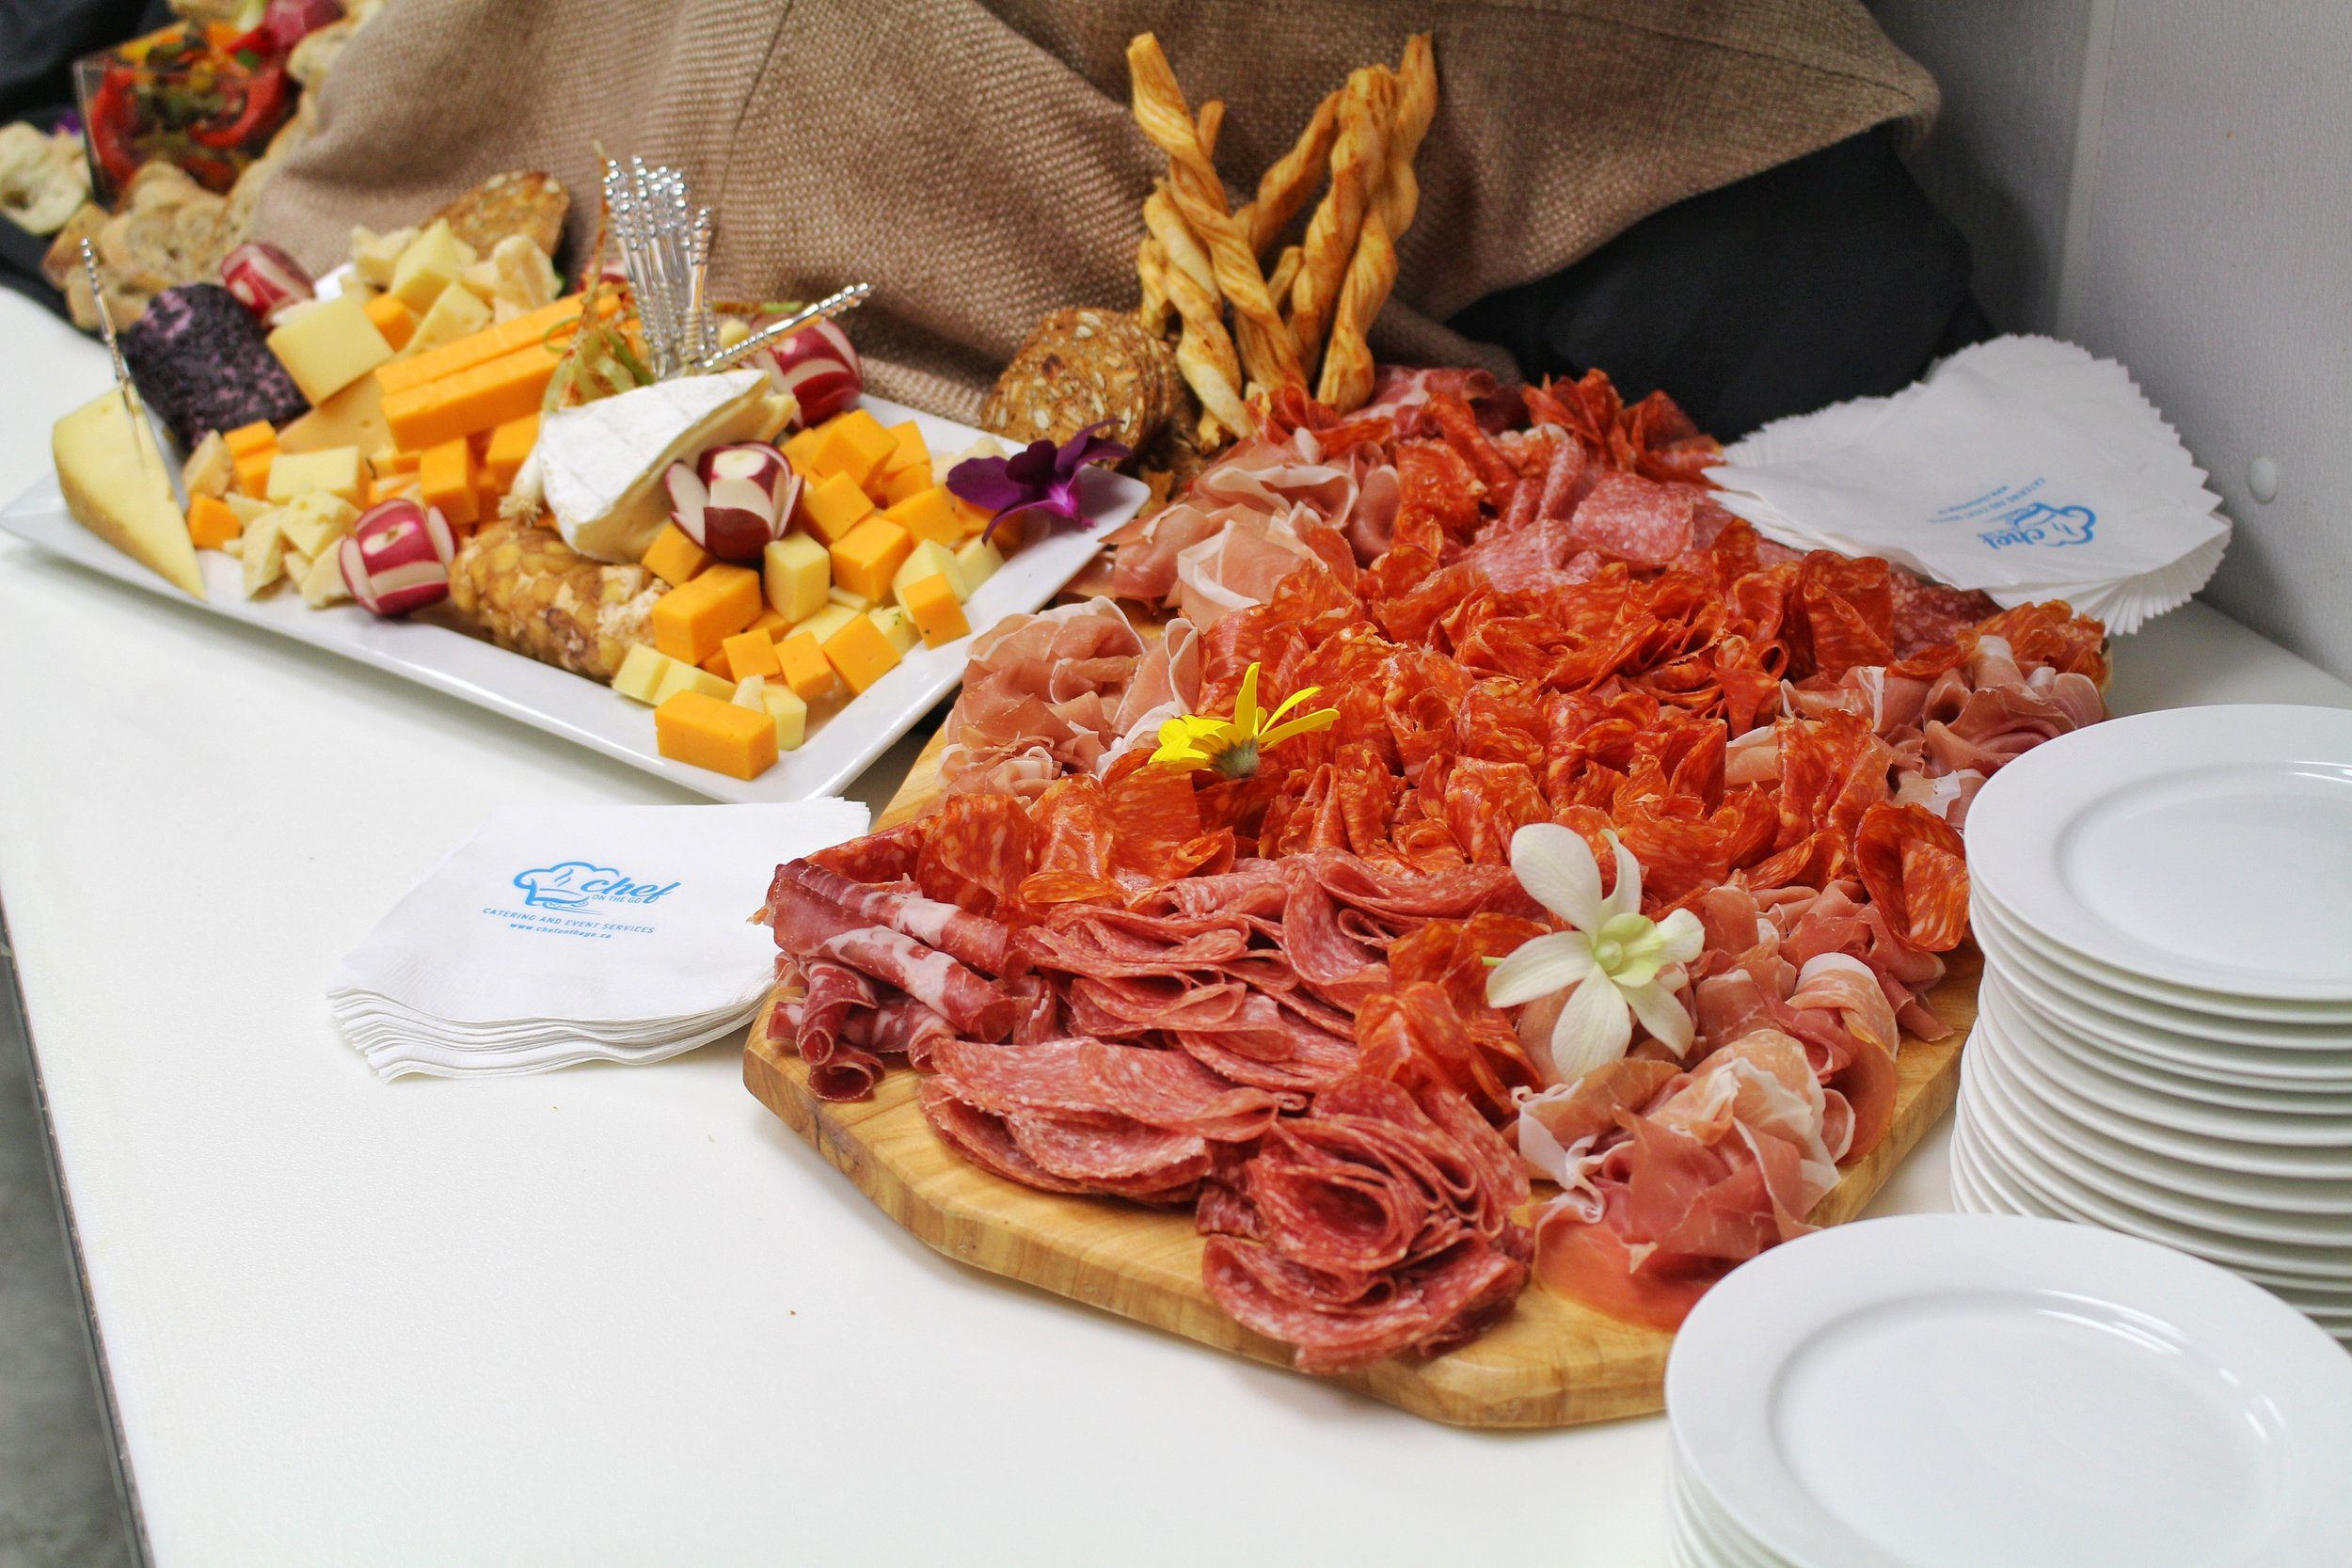 Fully Loaded Cheese & Charcuterie Board